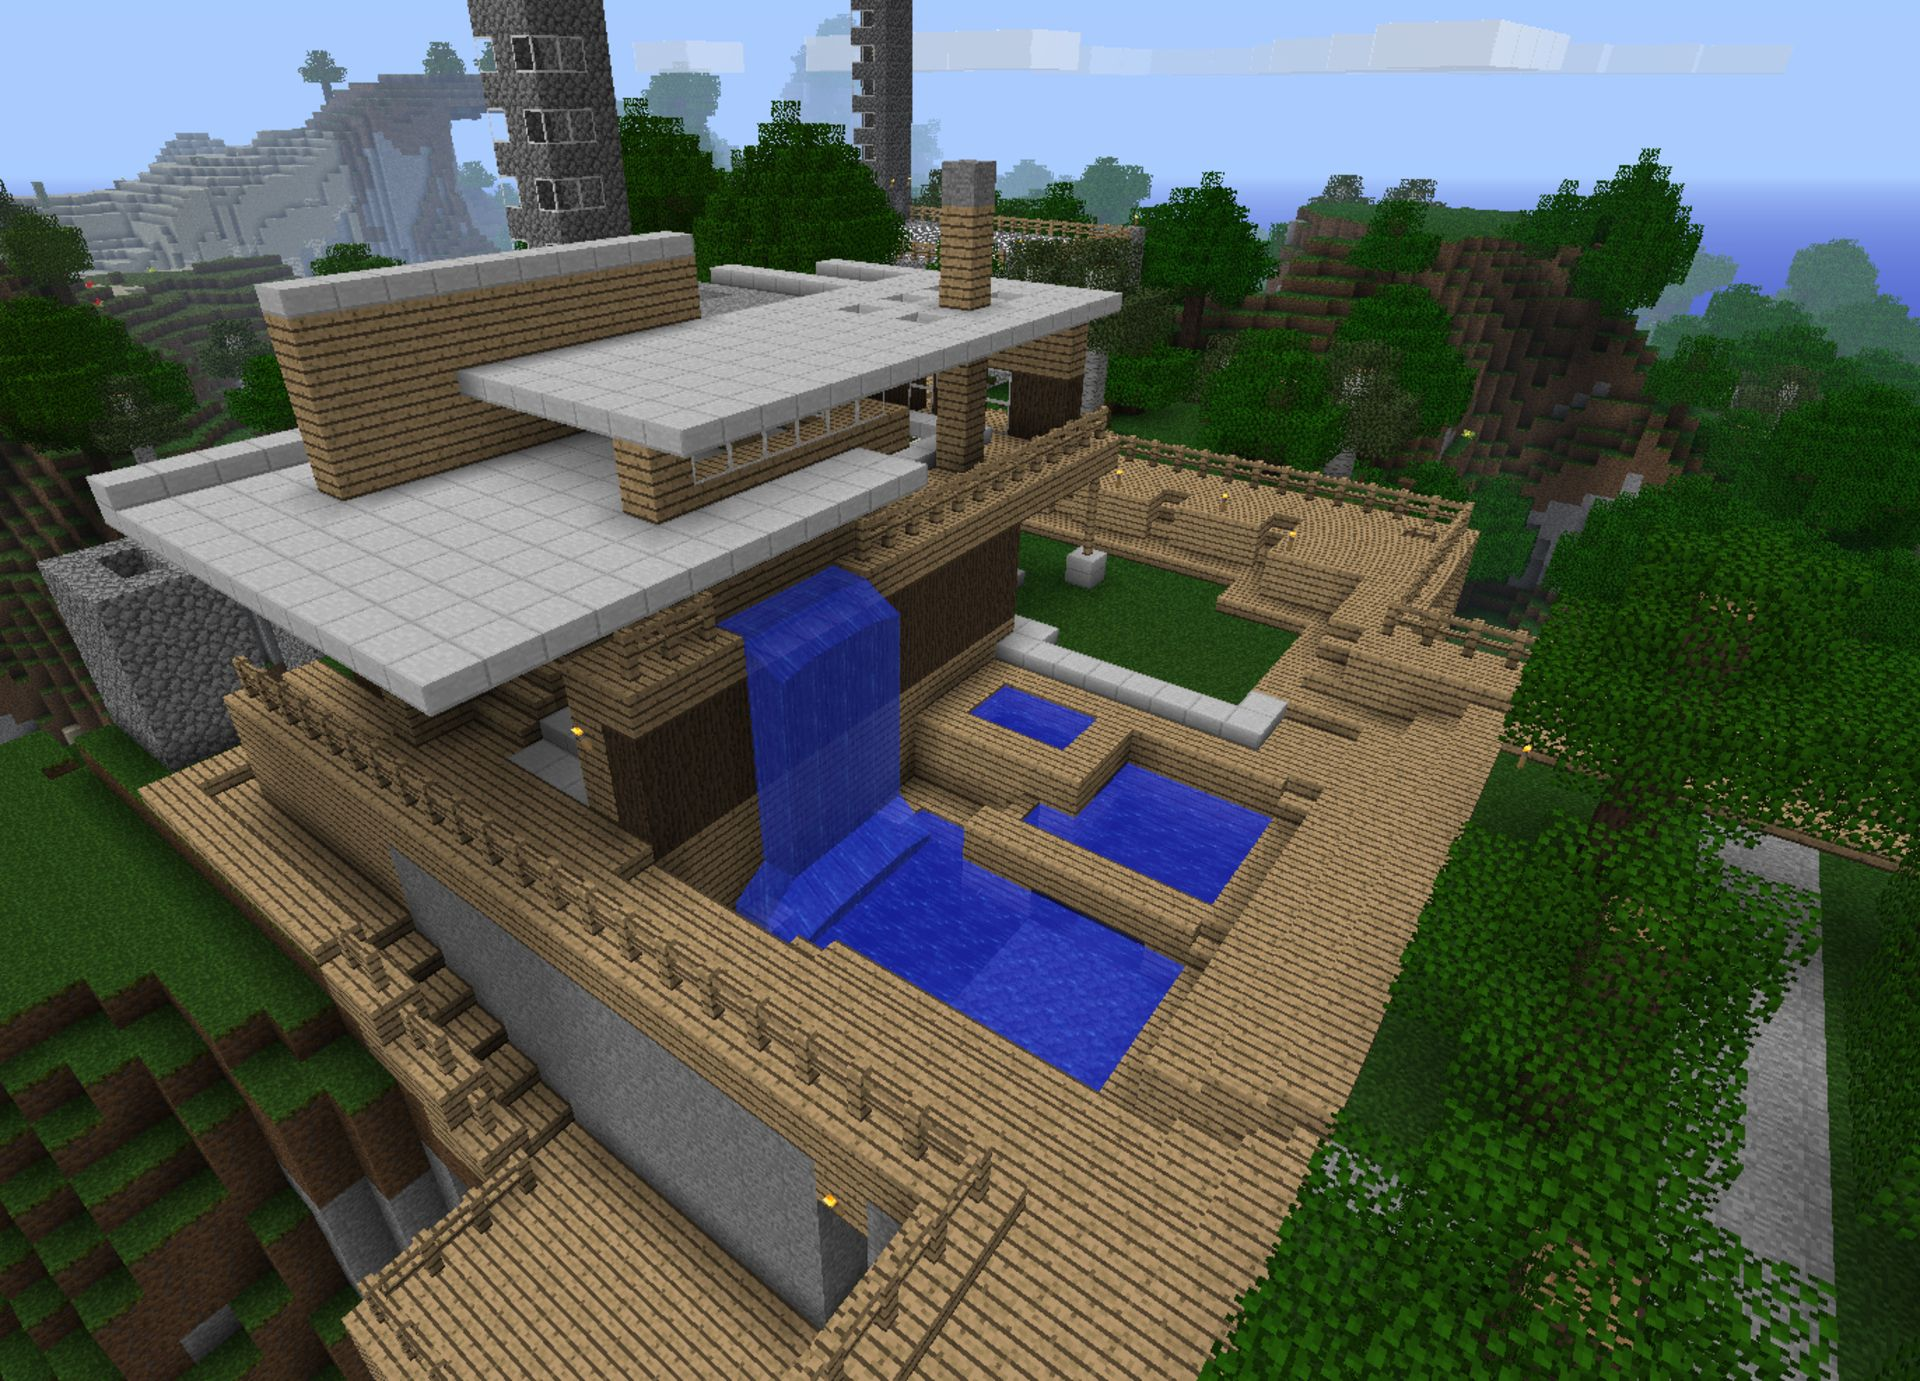 Cool Minecraft Houses Hd Background Wallpaper 24 HD Wallpapers